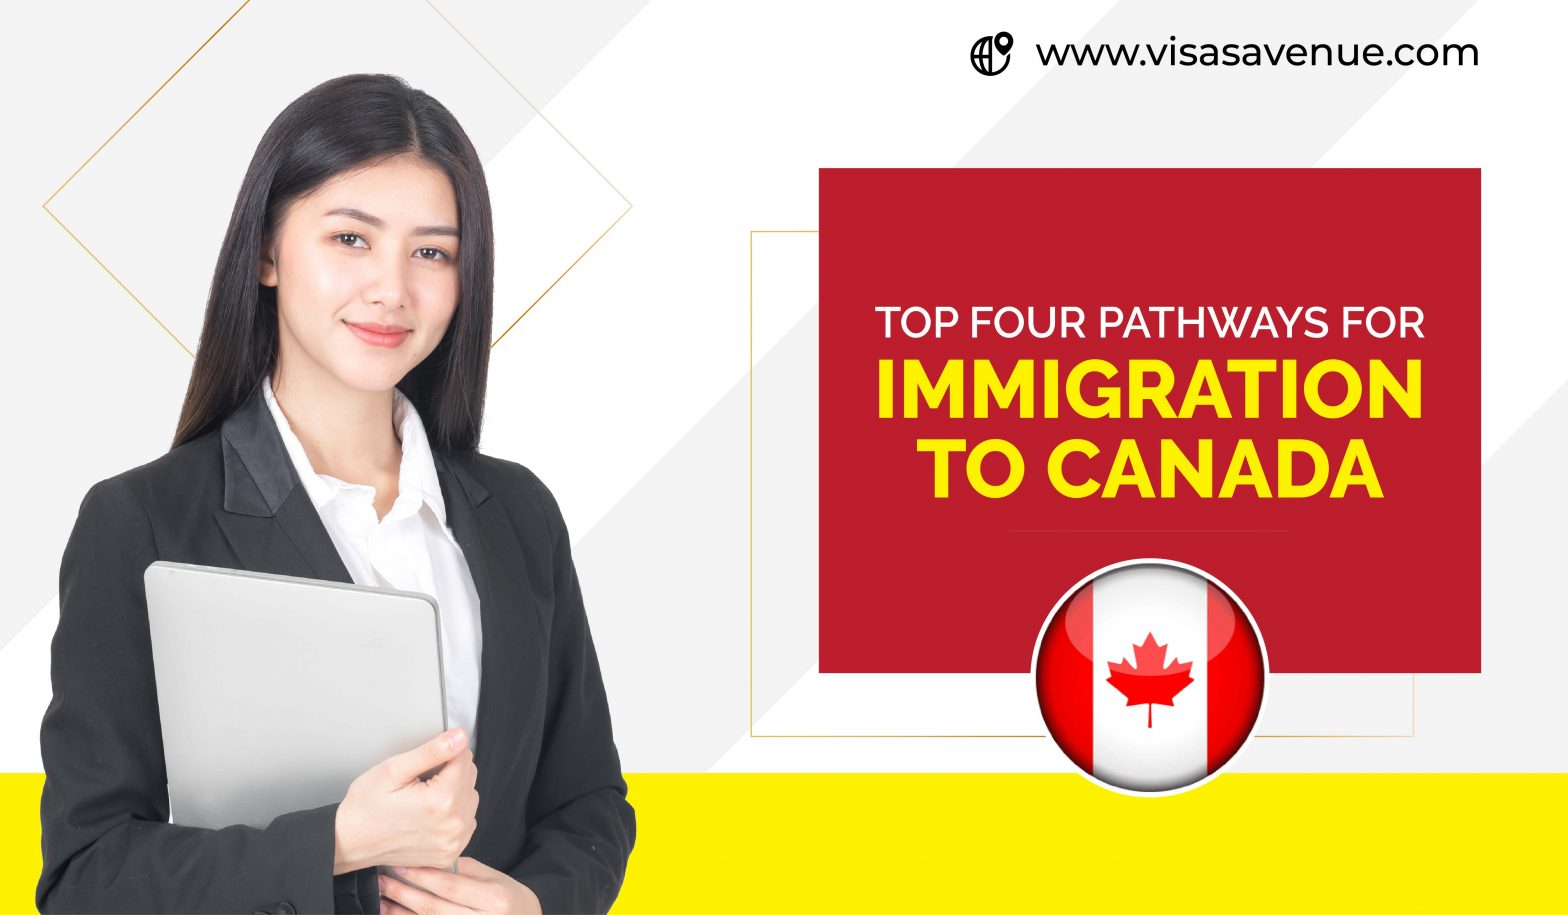 Top Four Pathways for Immigration to Canada